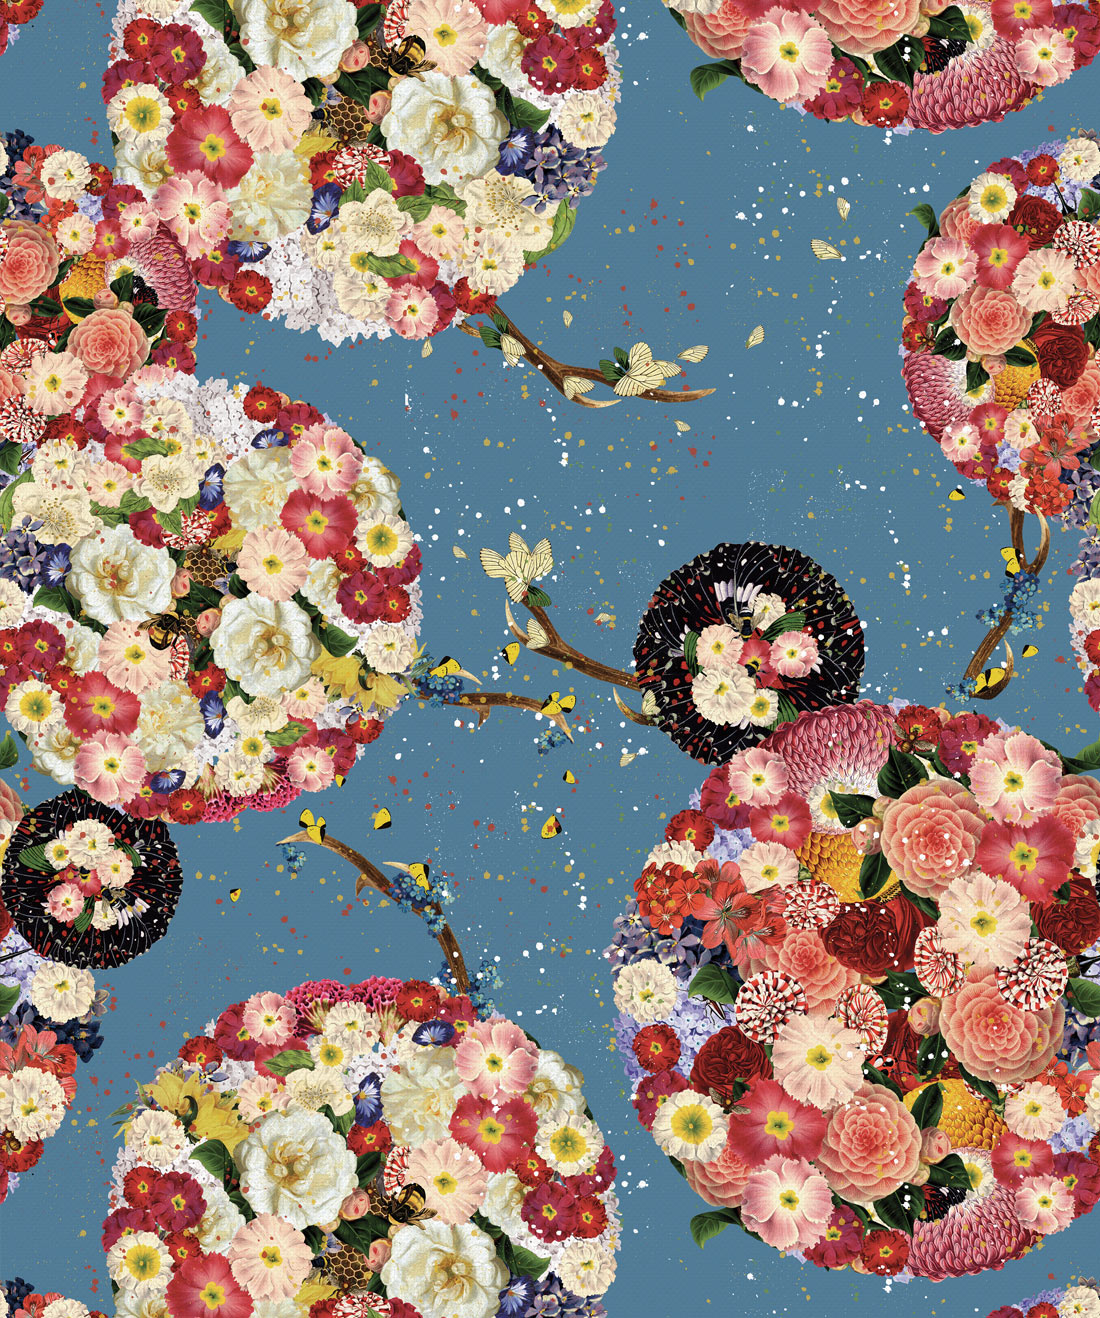 Flower Bomb Wallpaper